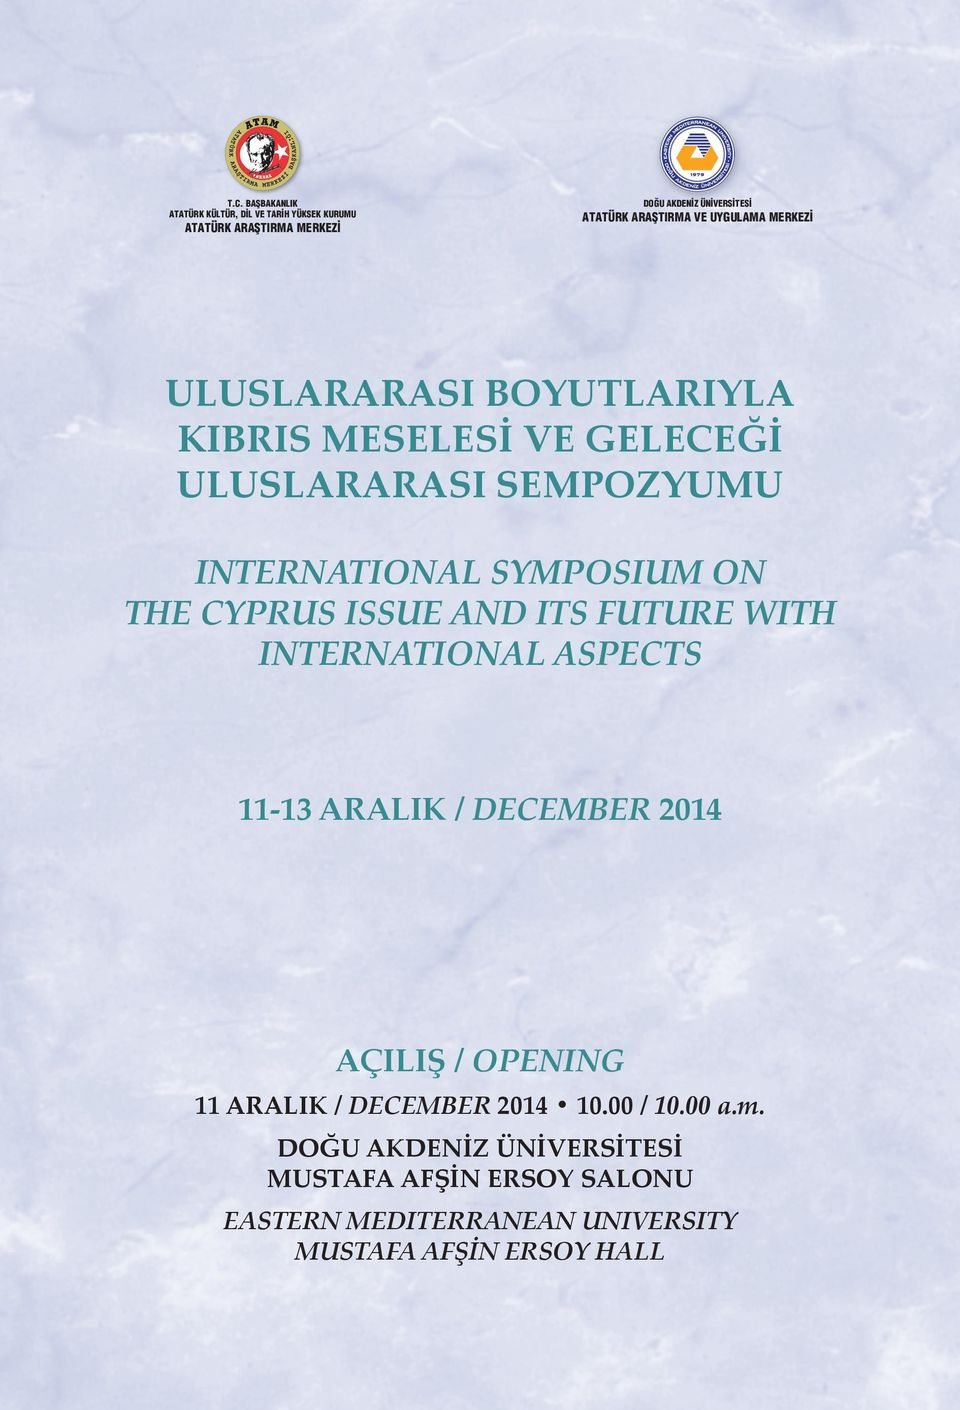 SYMPOSIUM ON THE CYPRUS ISSUE AND ITS FUTURE WITH INTERNATIONAL ASPECTS 11-13 ARALIK / DECEMBER 2014 AÇILIŞ / OPENING 11 ARALIK